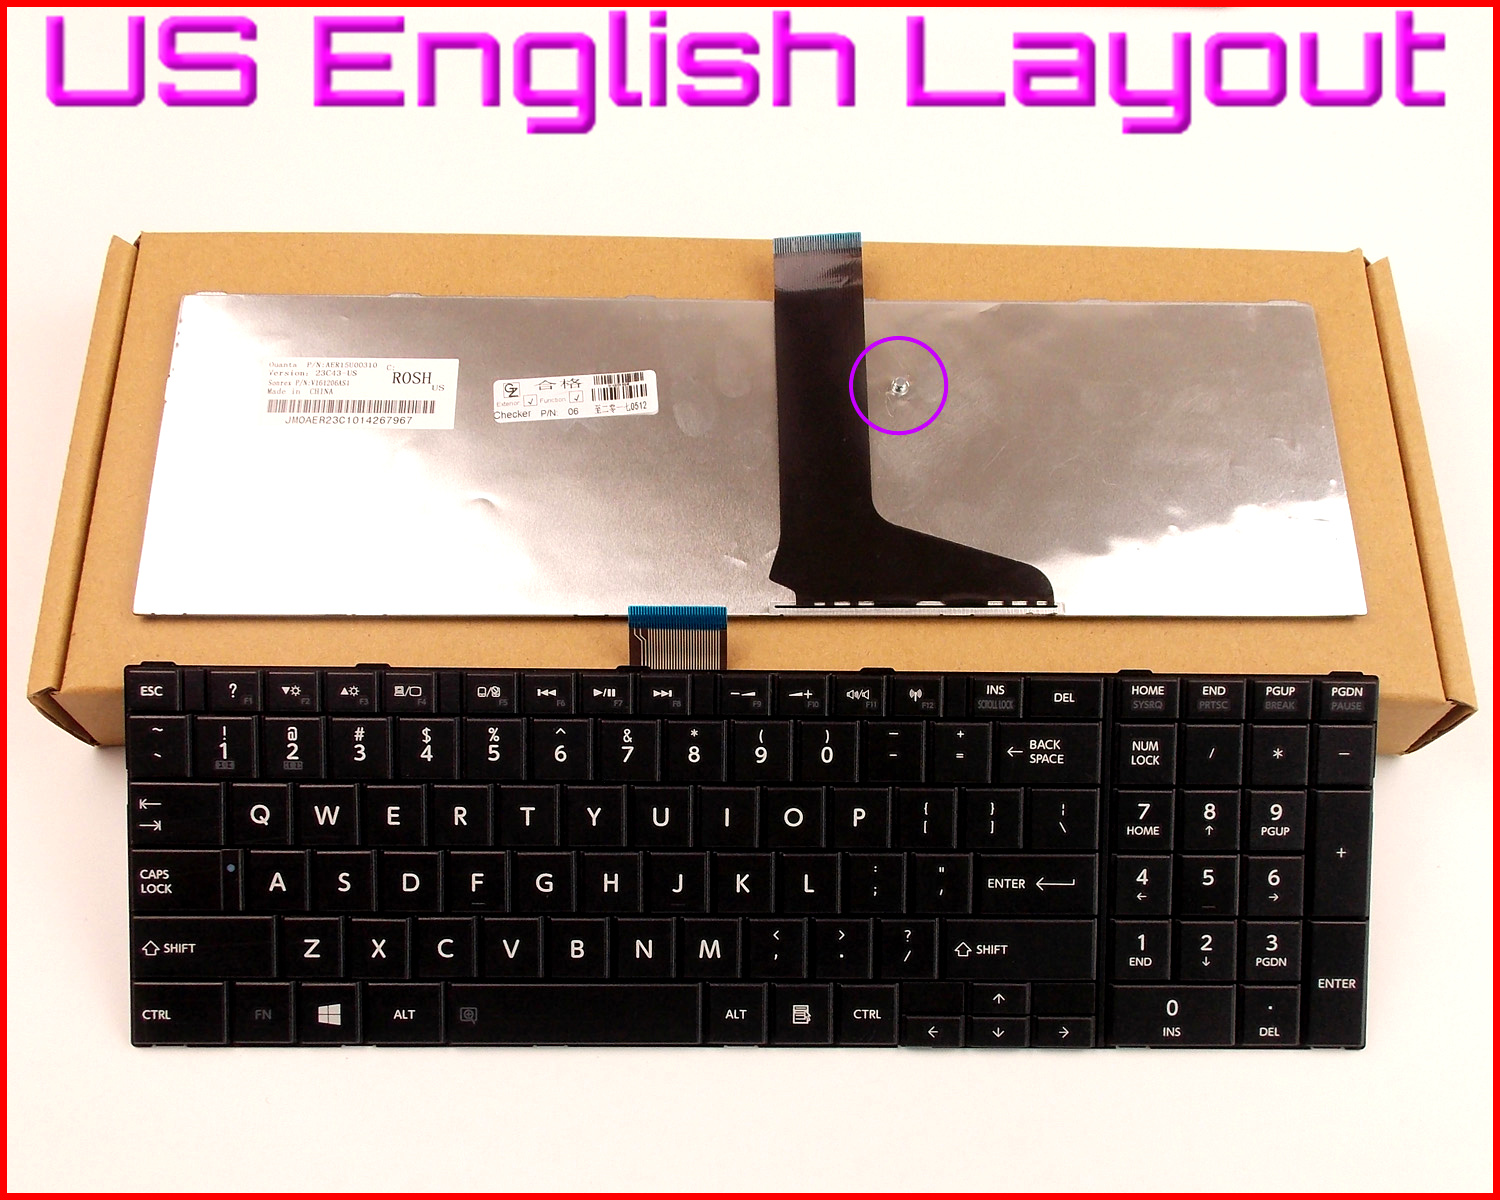 New Keyboard US English Version for Toshiba Satellite L870 C875D C875 S875 C870 C850D C870D L850D L855 S950 S950D S955D Laptop|for toshiba|keyboard toshiba satellite c850d|toshiba satellite c850d keyboard - title=